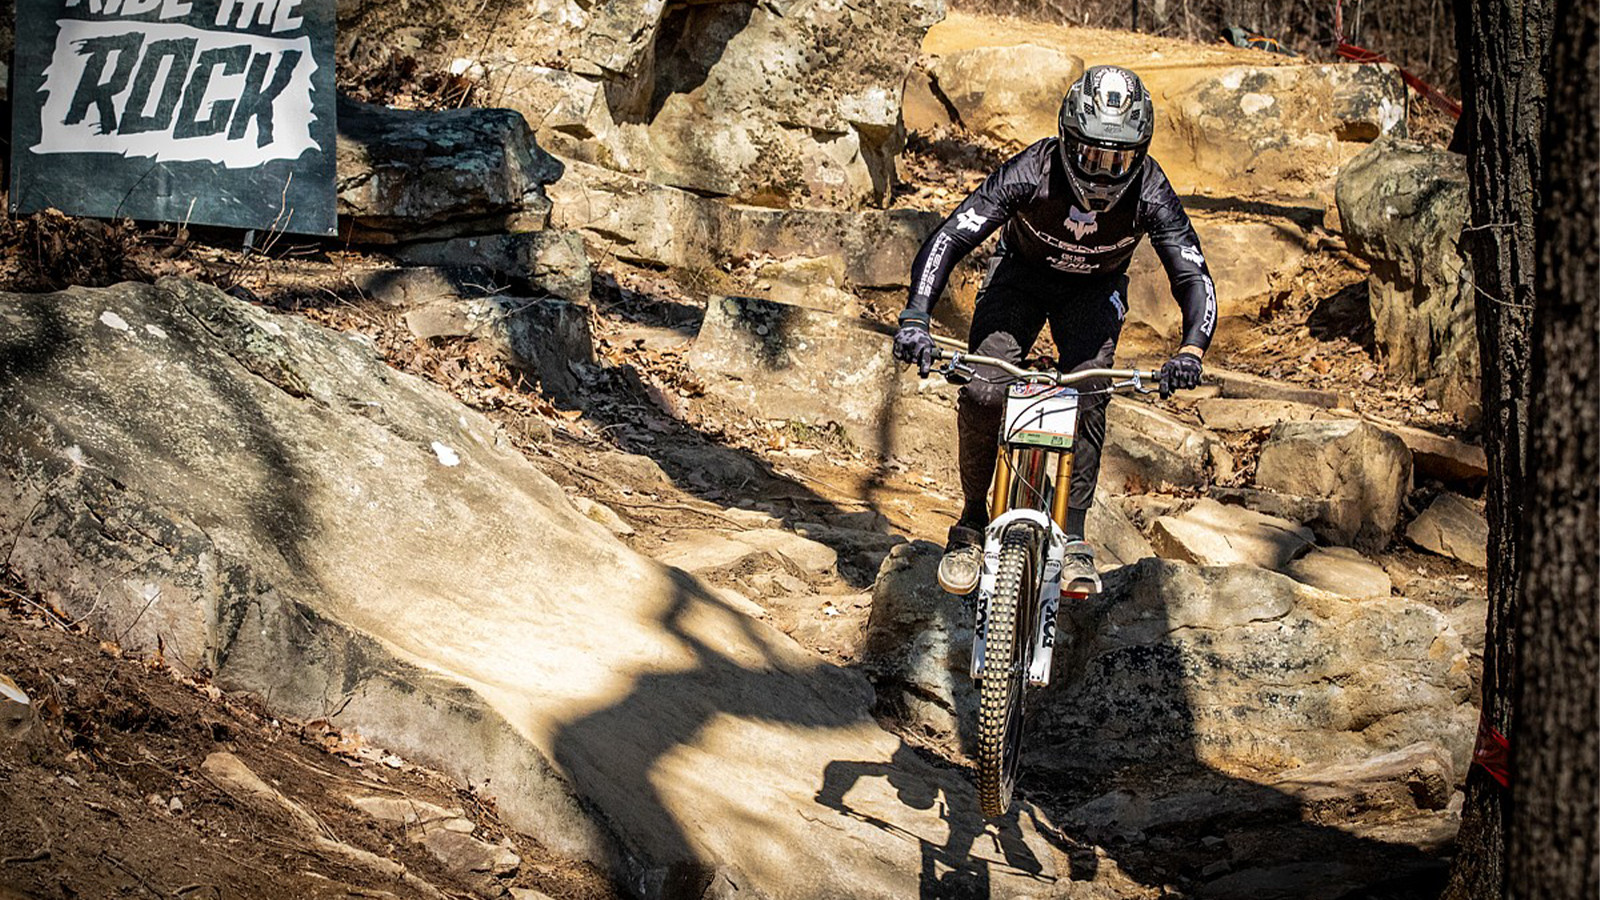 Downhill Southeast Series Announces Revised 2020 Schedule